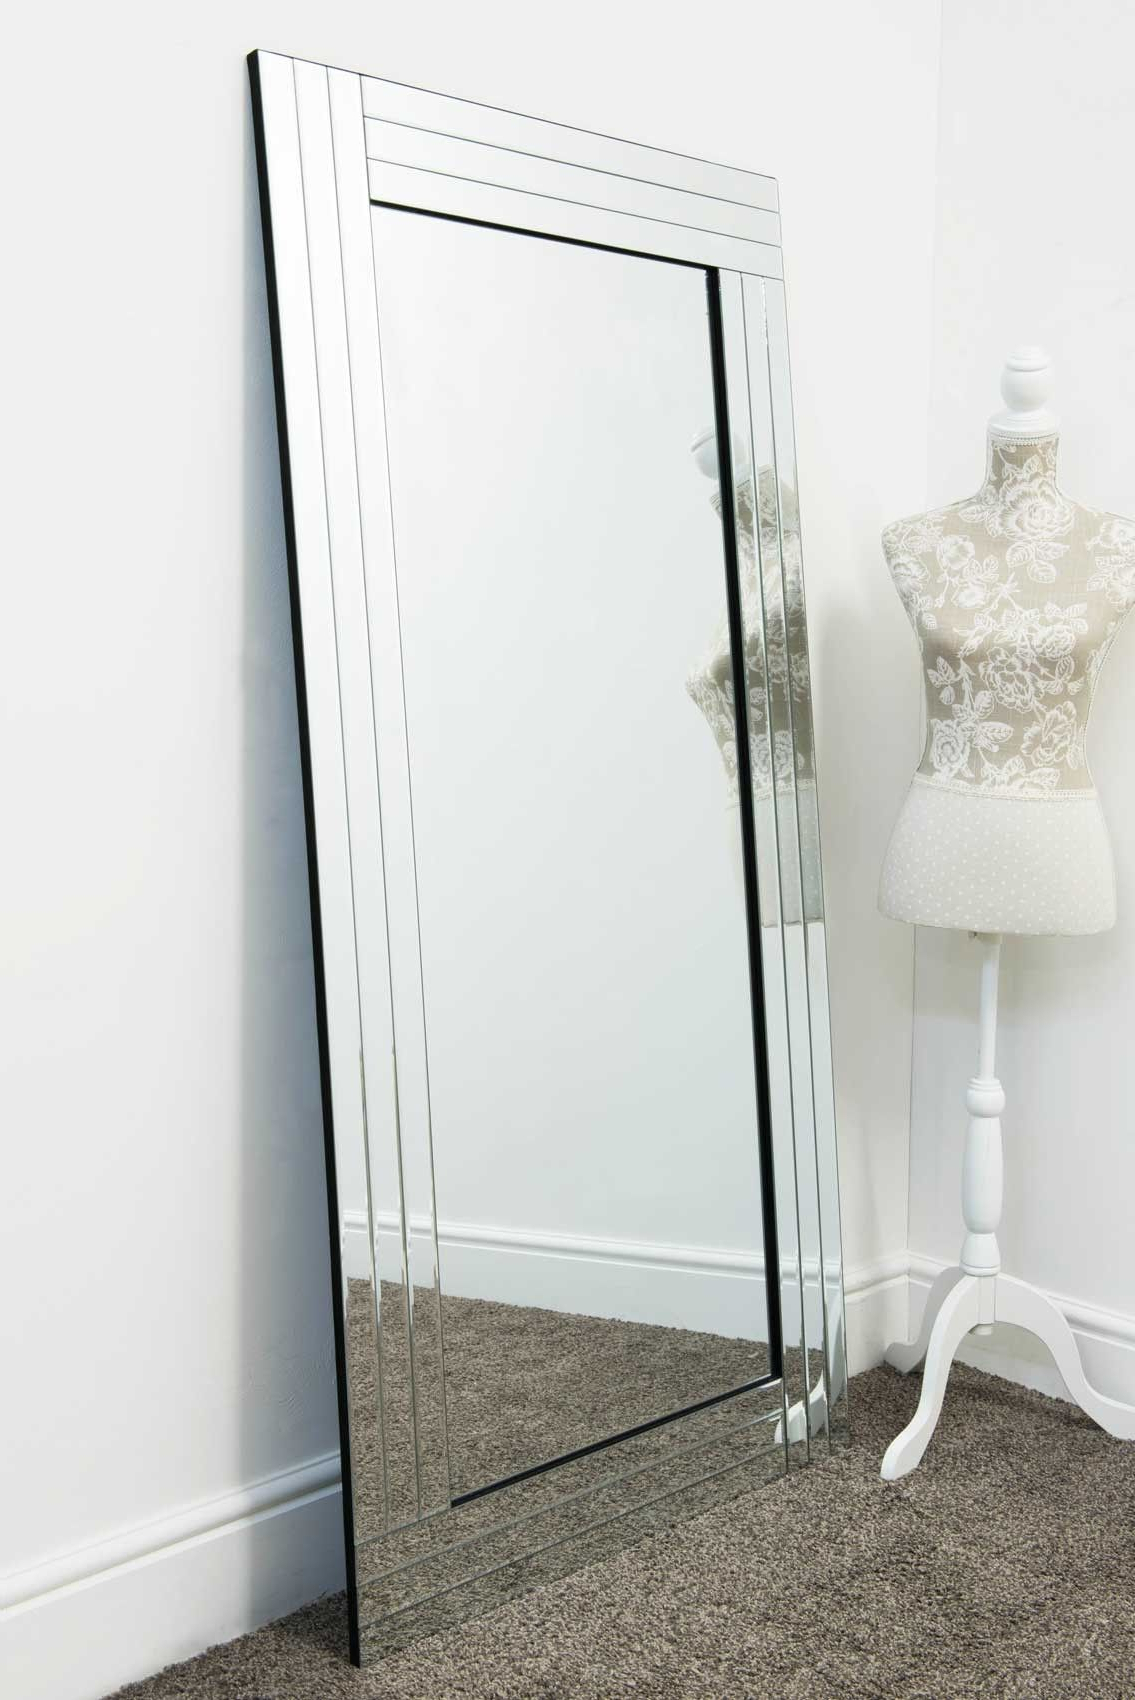 Best And Newest Large Glass Bevelled Wall Mirrors Inside Large Silver Bevelled Modern All Glass Wall Mirror 5Ft8 X 2Ft9 174Cm (View 14 of 20)